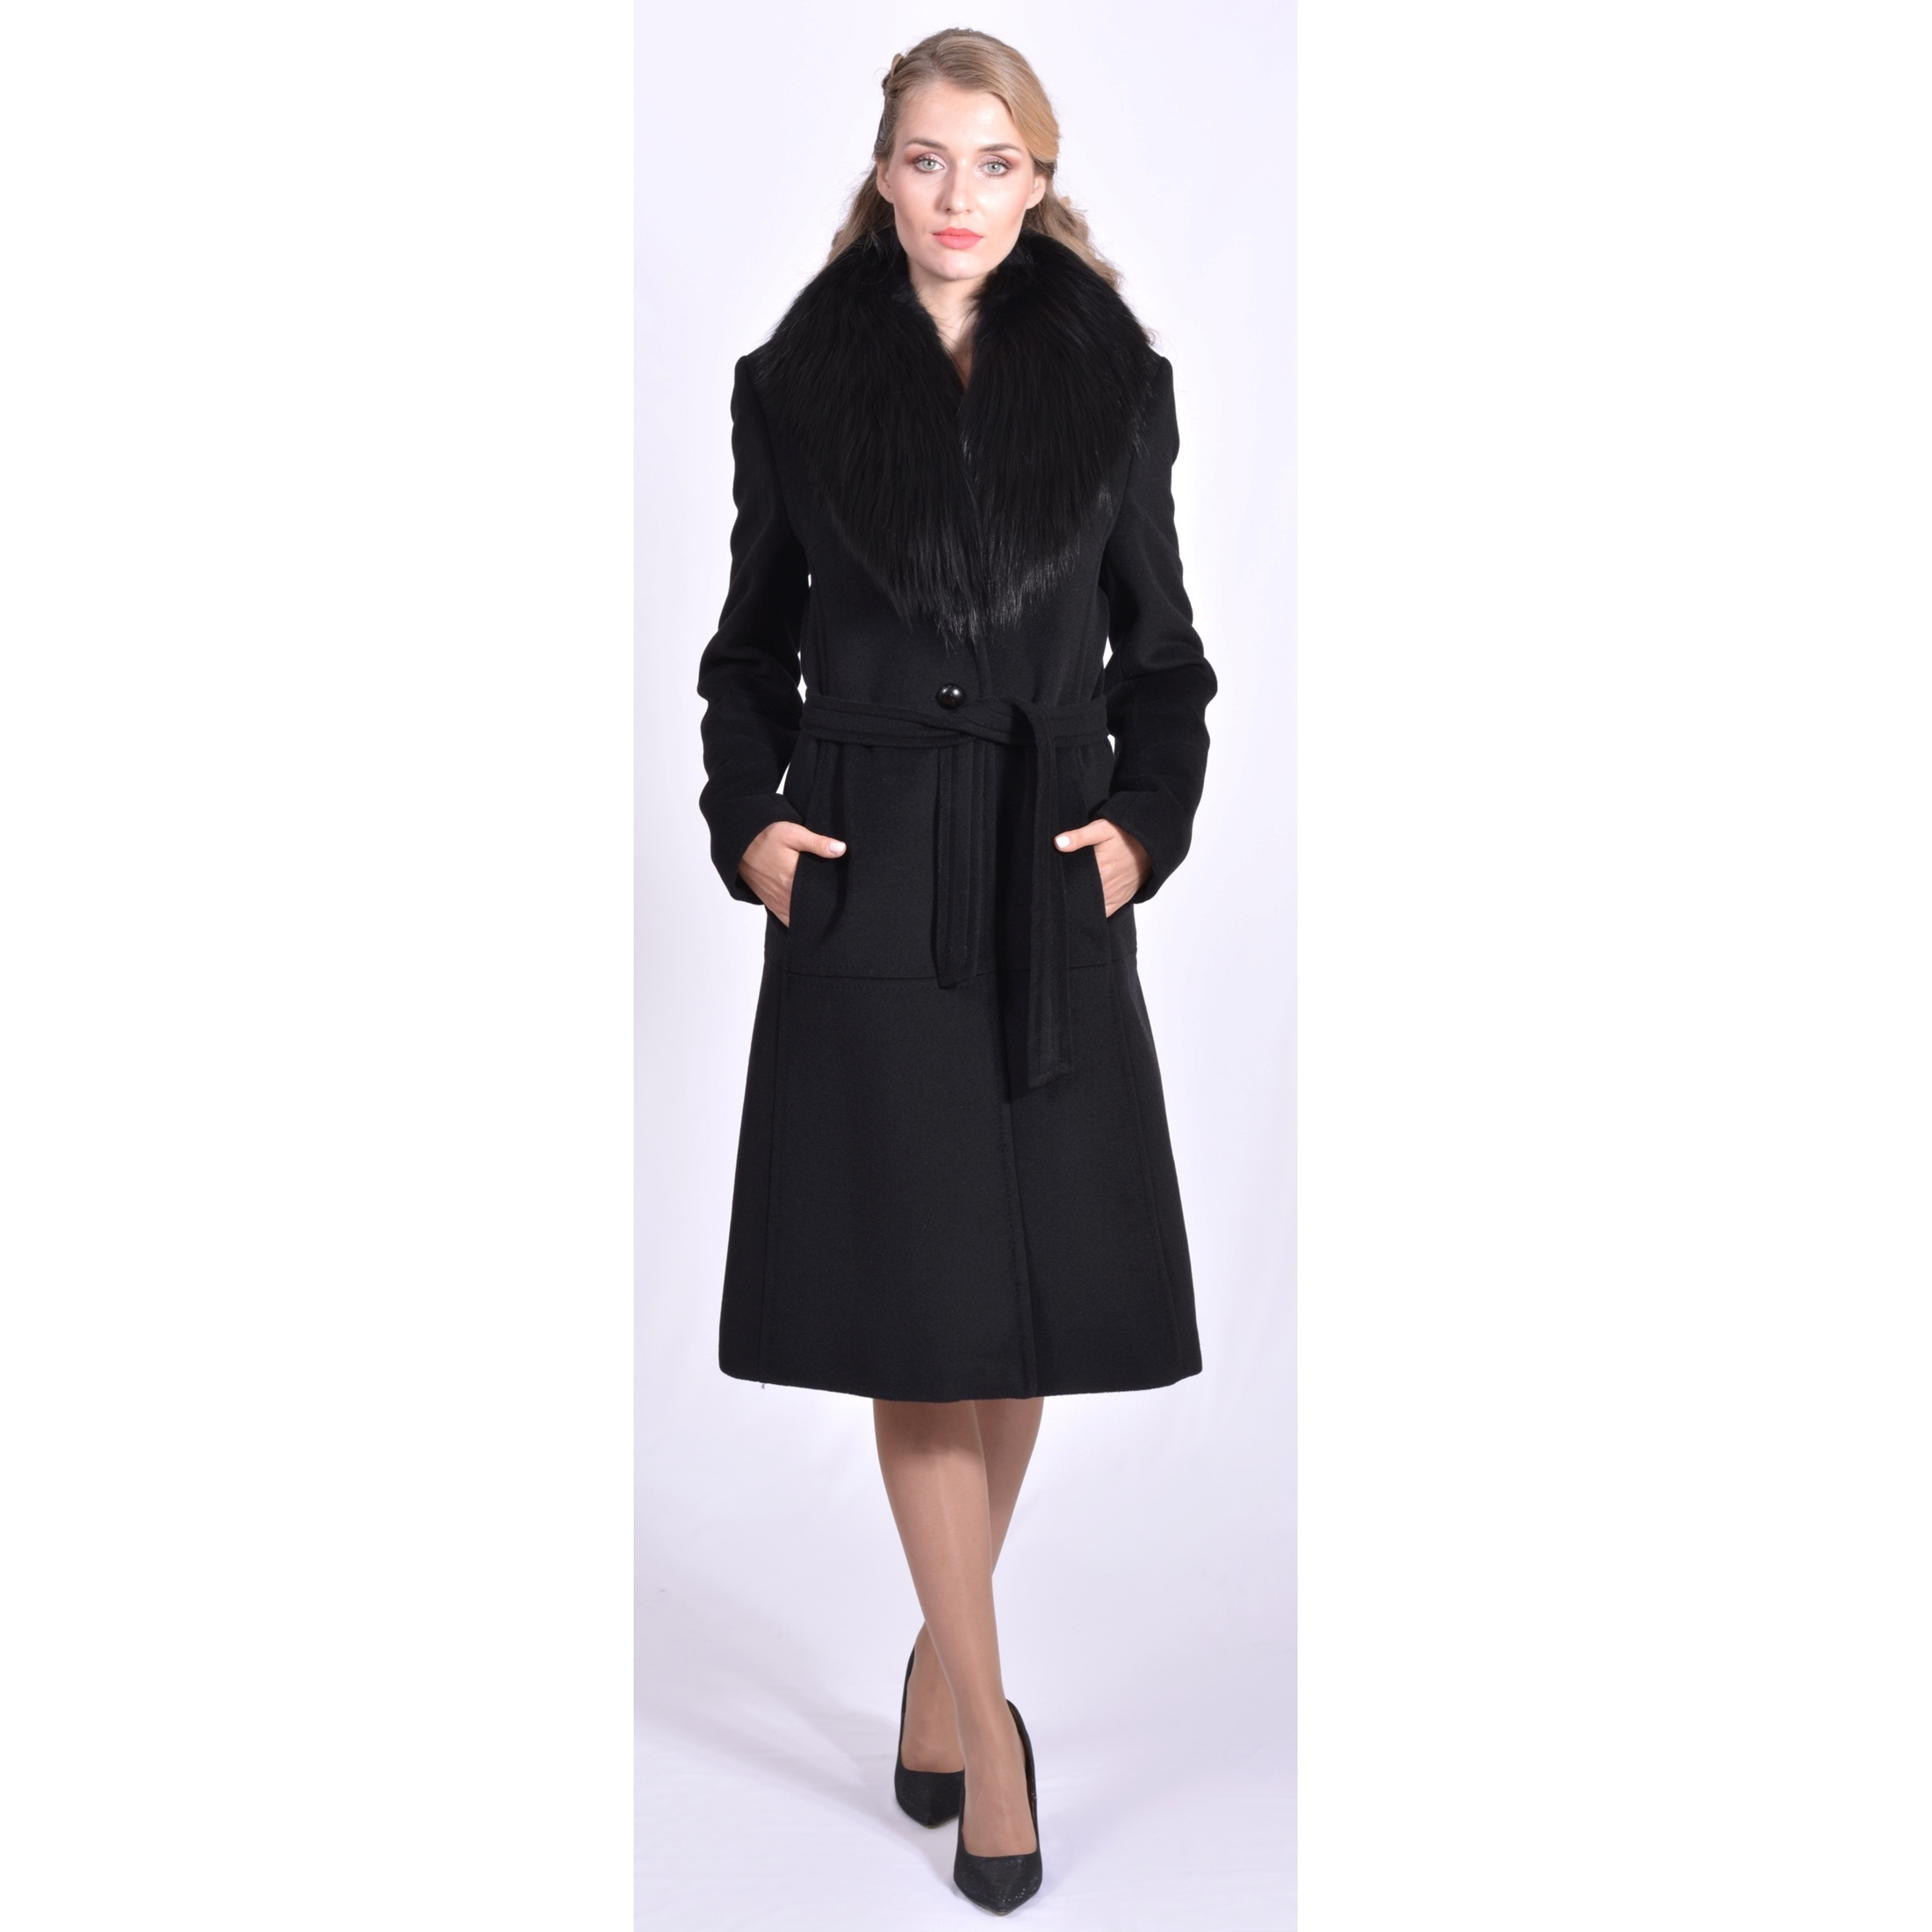 women's coat,lady m coat,winter coat,ženski kaput lady m